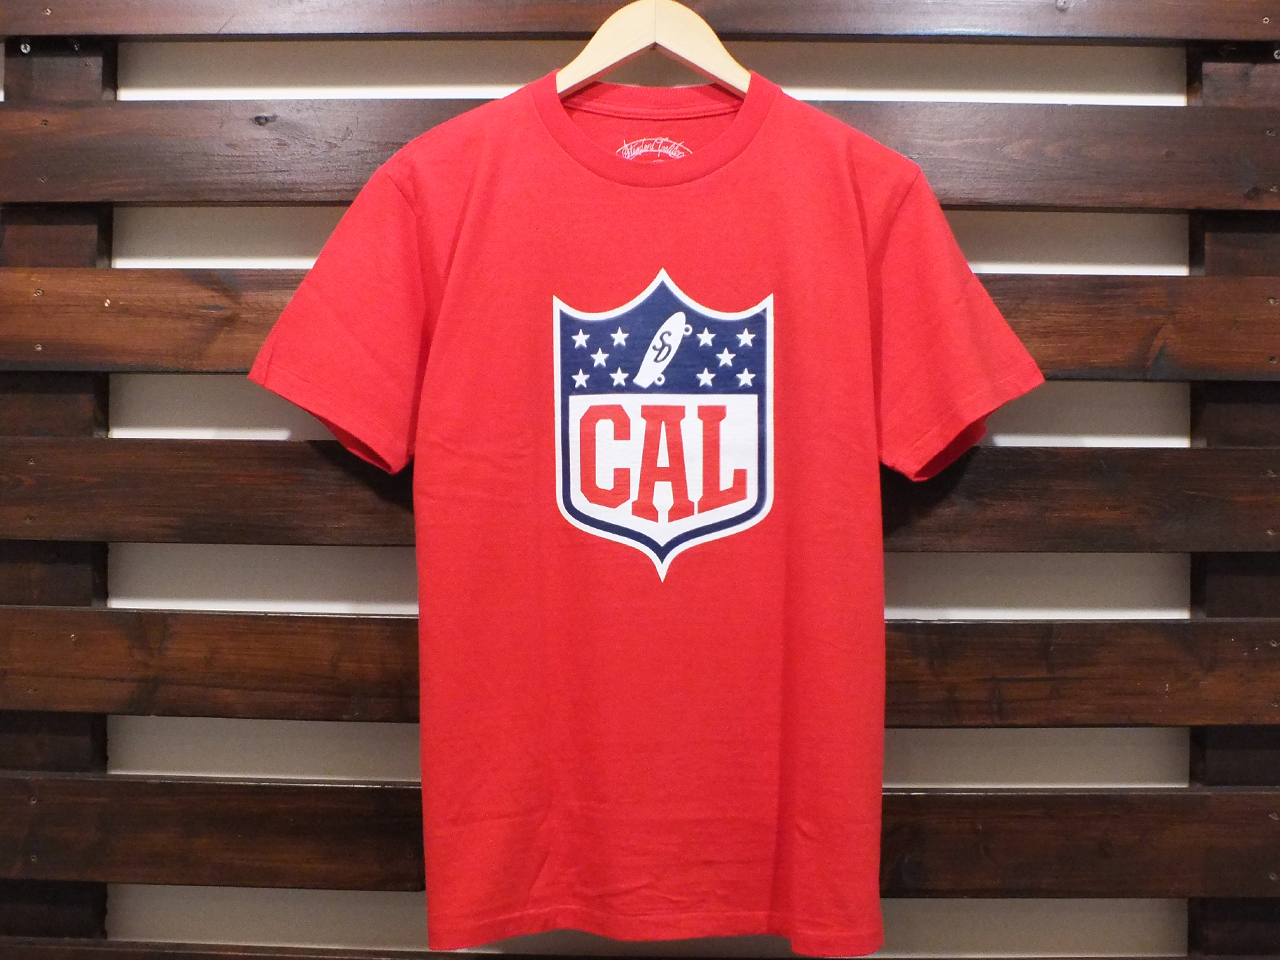 STANDARD CALIFORNIA CAL SHIELD LOGO T-SHIRT RED 「メール便OK」